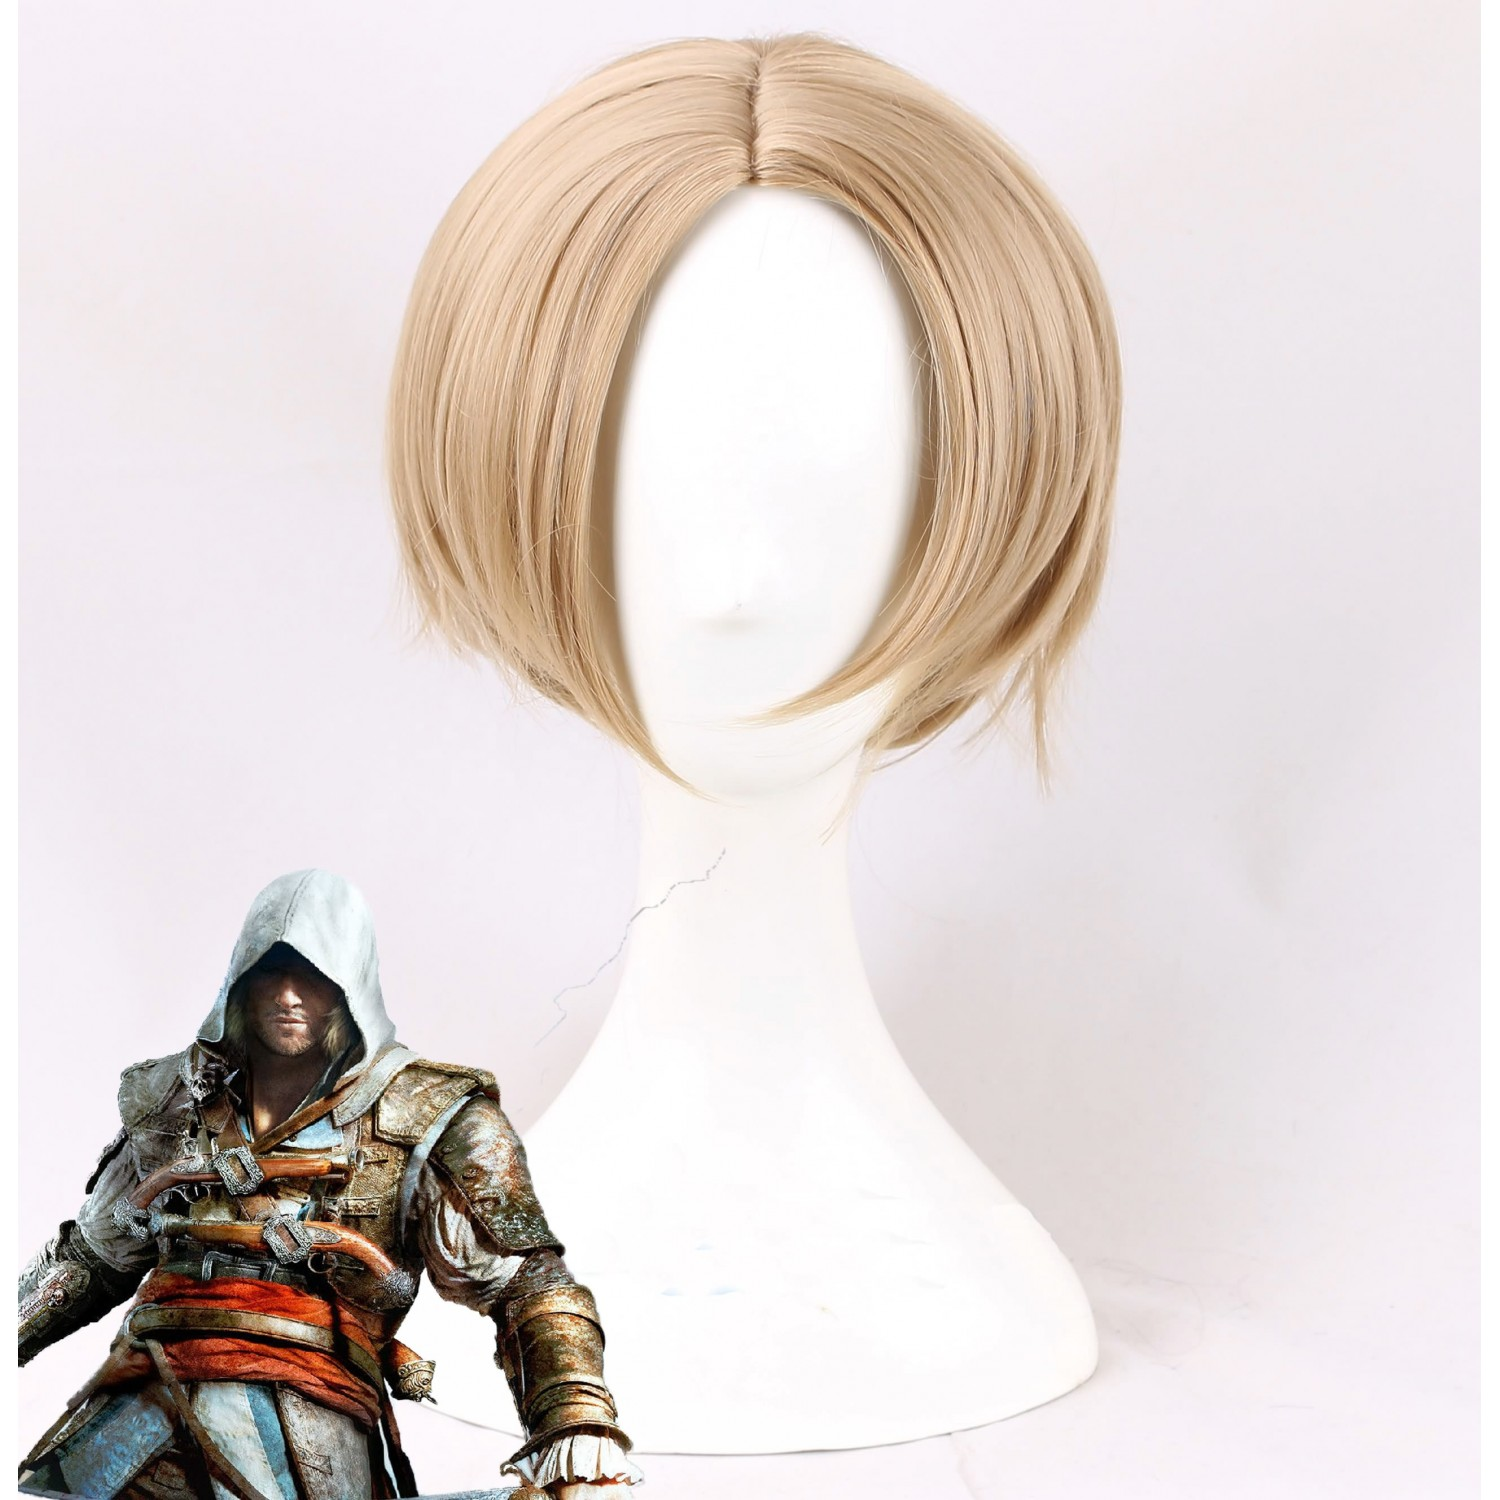 Assassin's Creed Edward James Kenway Cosplay Wig